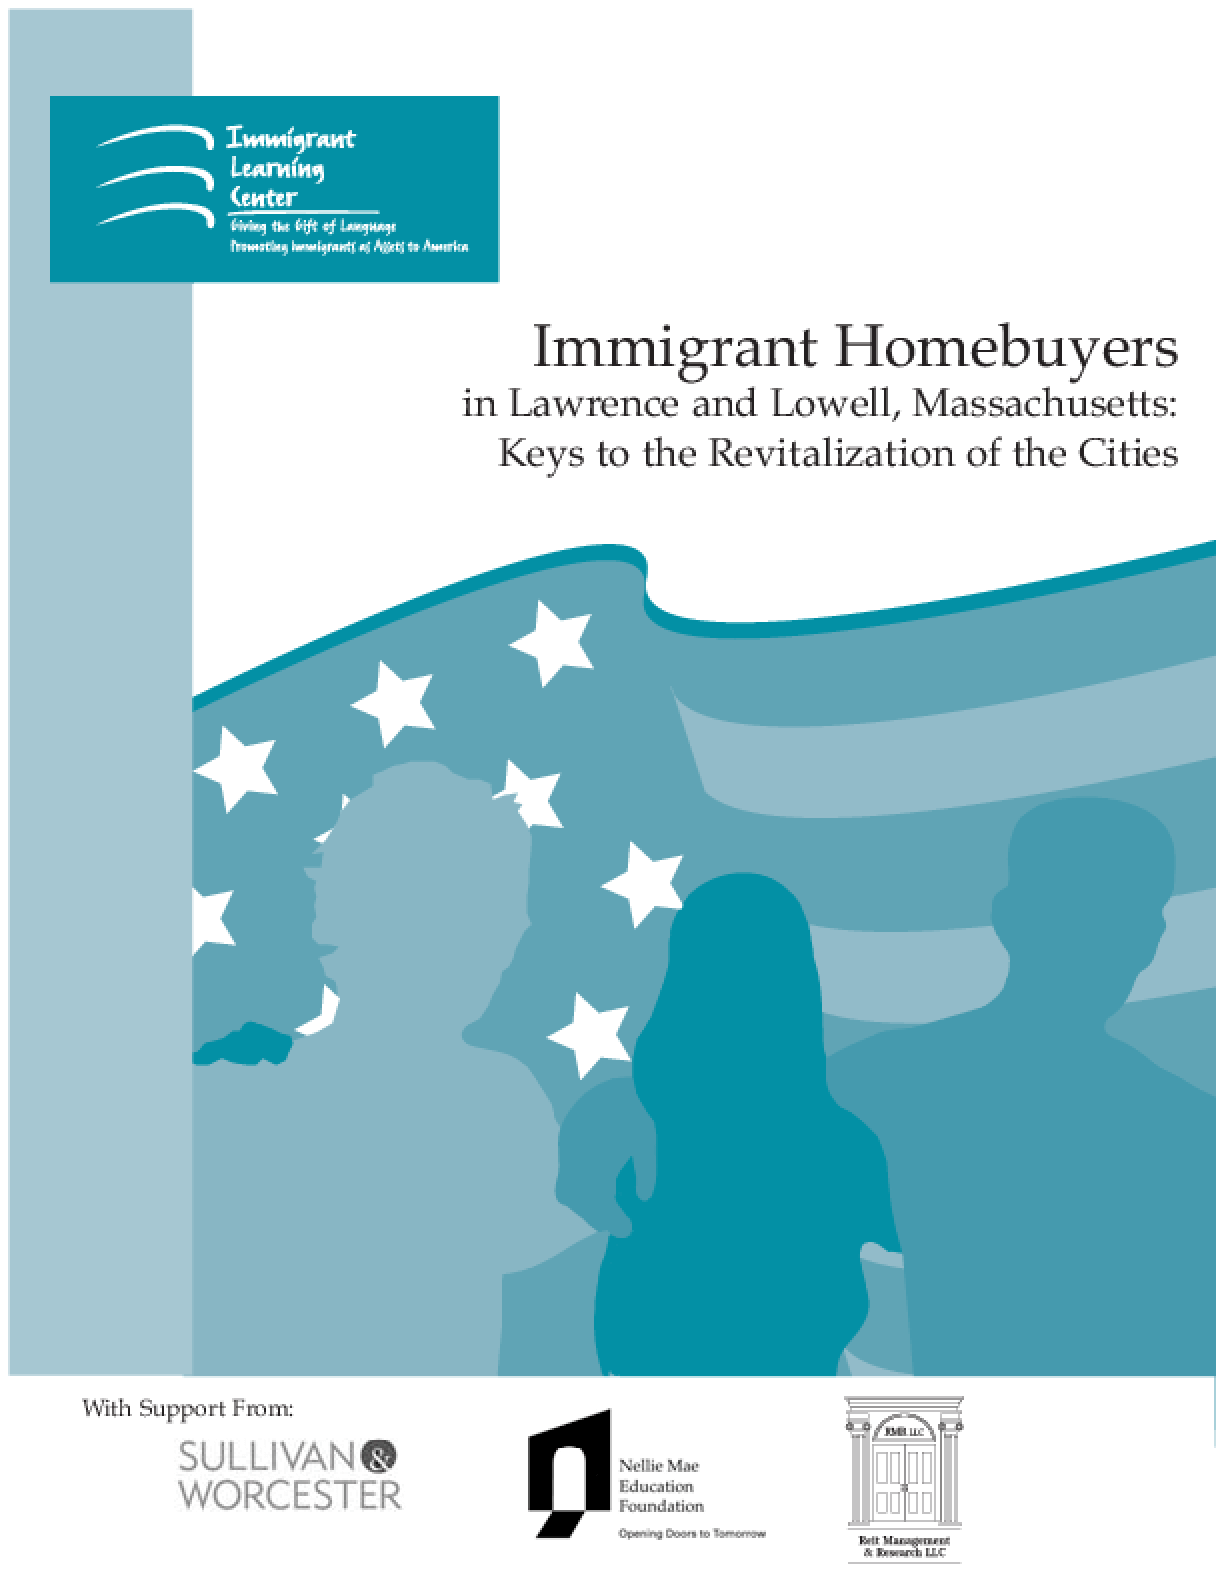 Immigrant Homebuyers in Lawrence and Lowell, Massachusetts: Keys to the Revitalization of the Cities